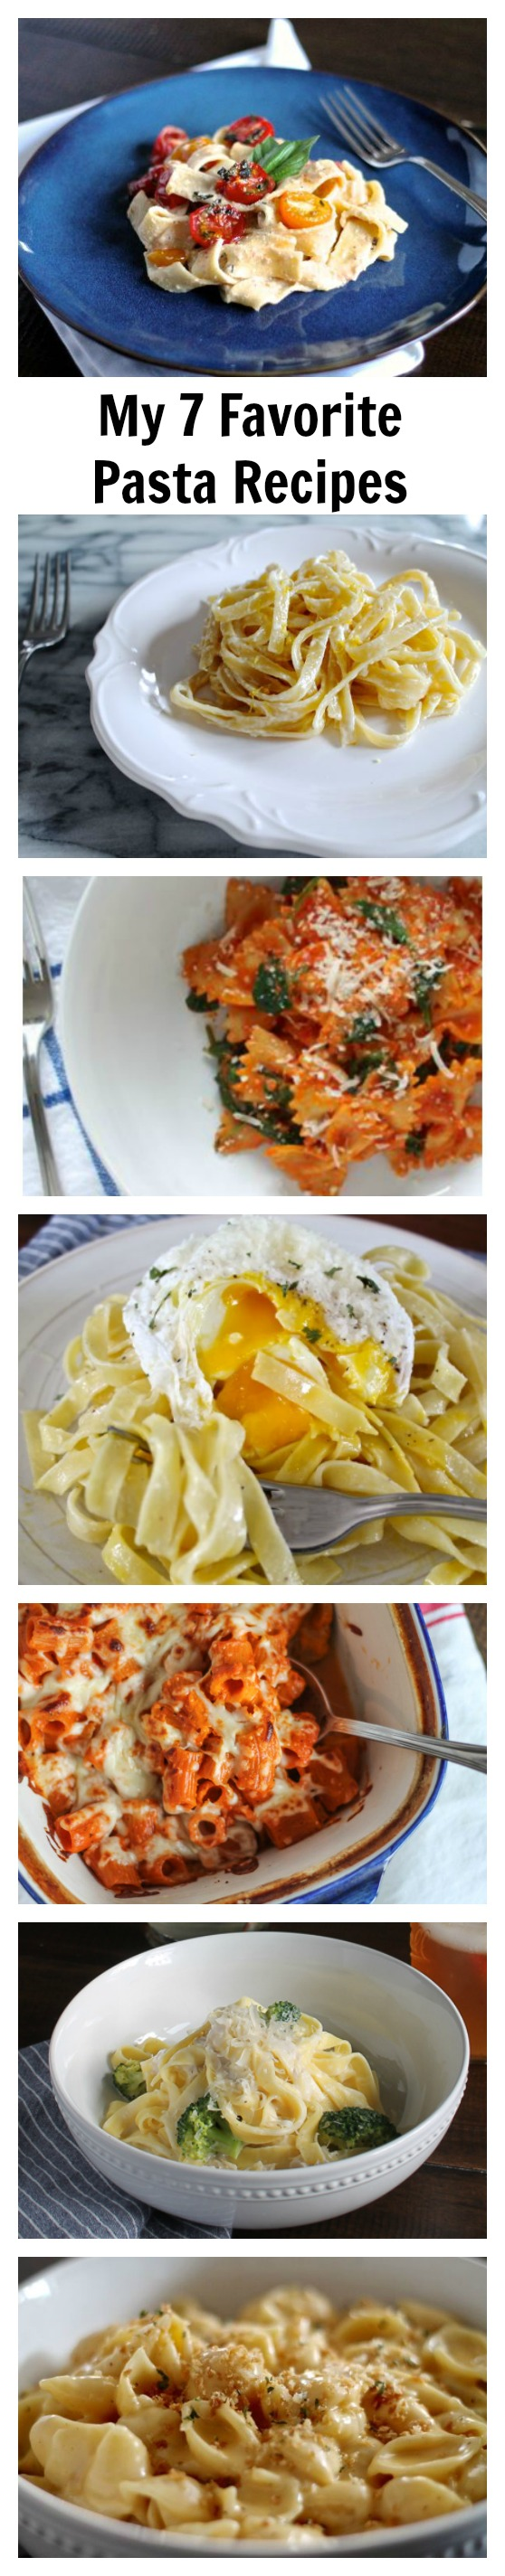 My 7 Favorite Pasta Recipes